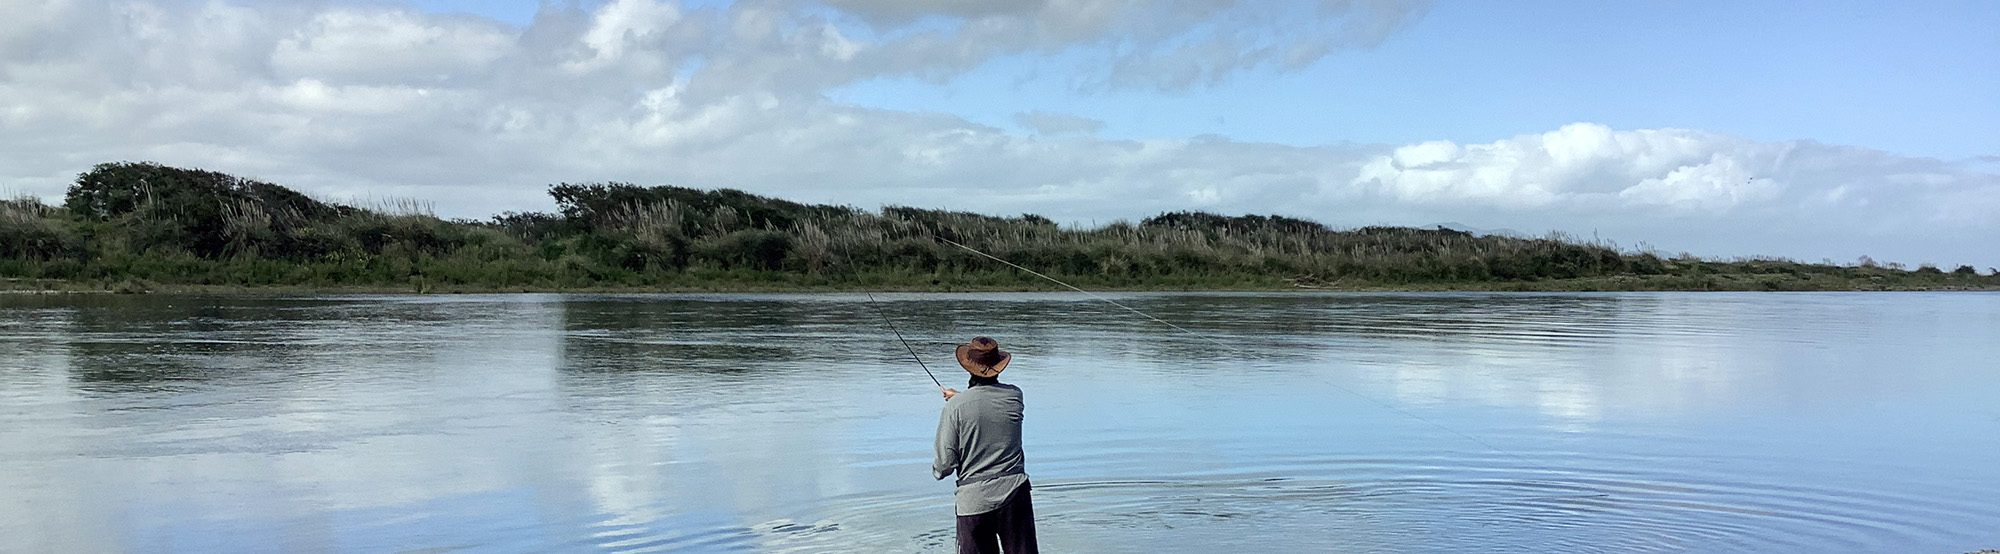 man-wearing-hat-double-spey-casting-on-river